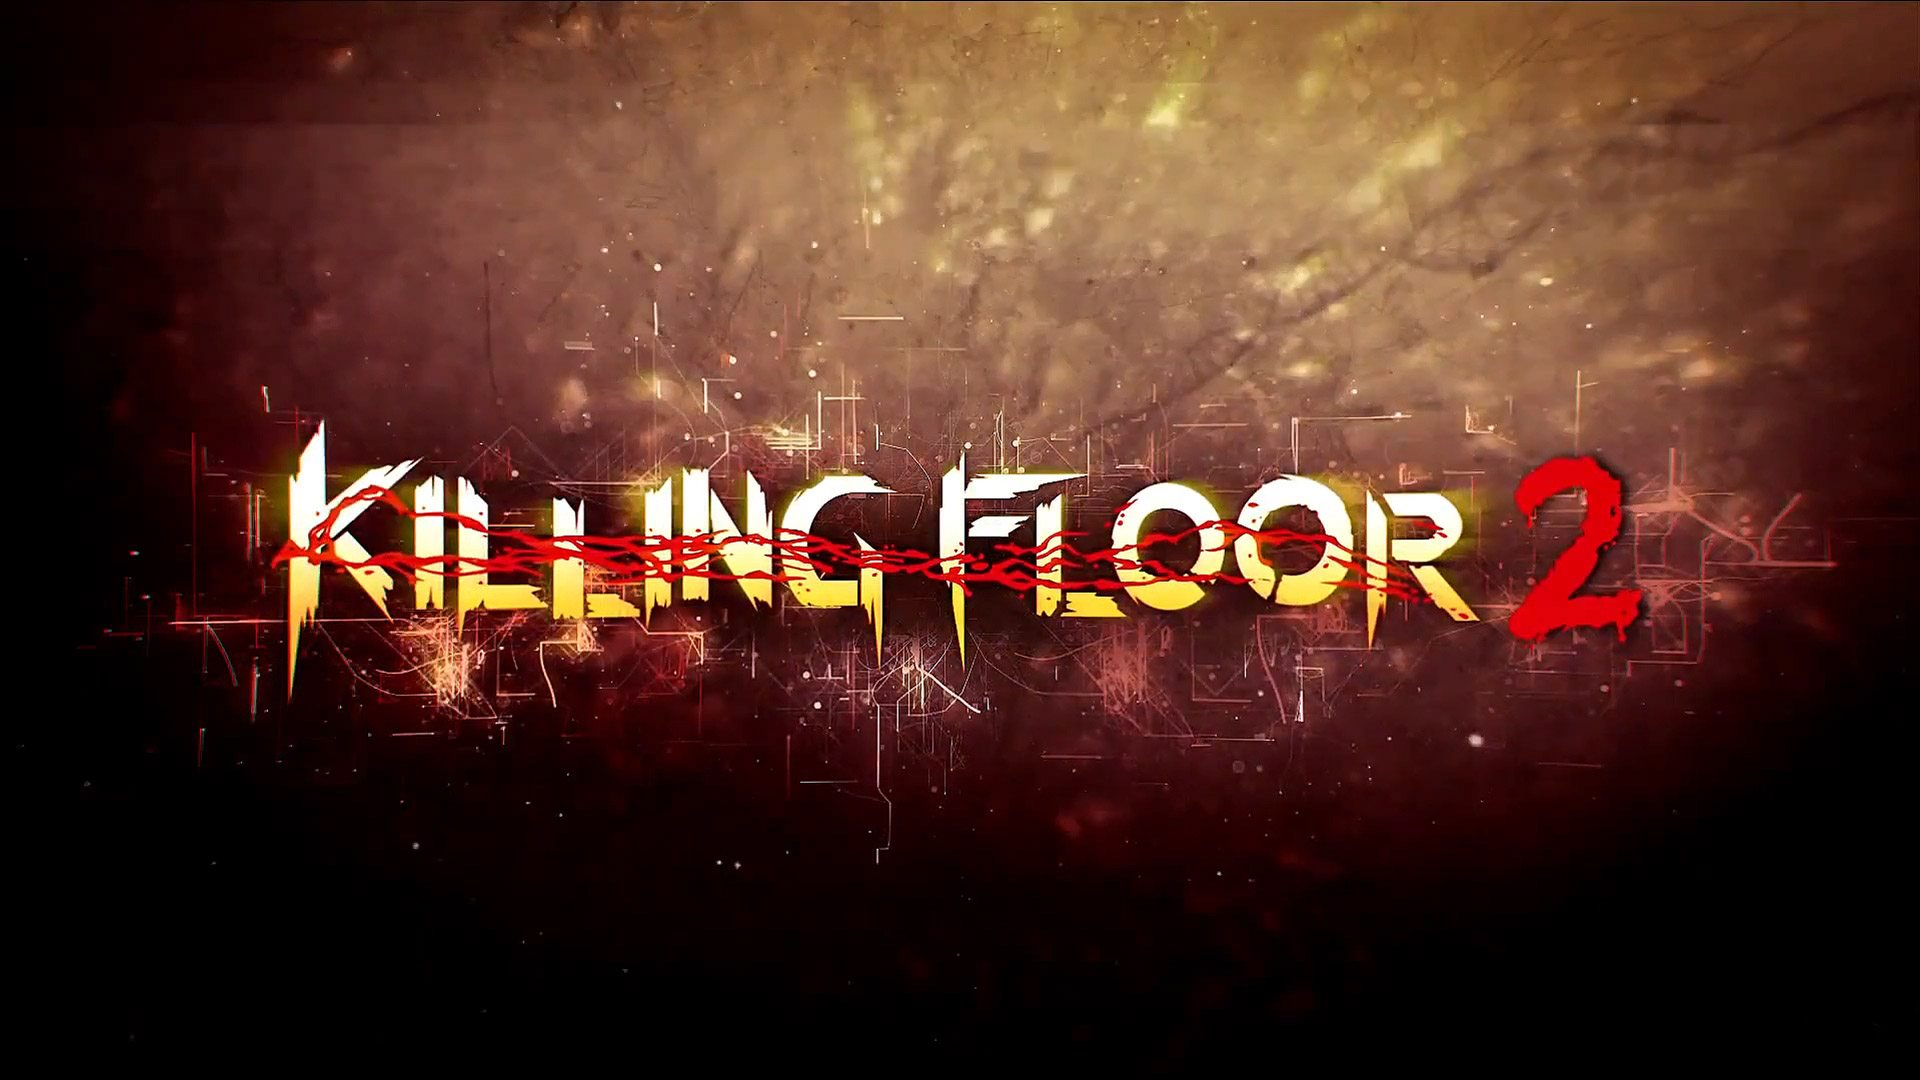 Free Killing Floor 2 Wallpaper in 1920x1080